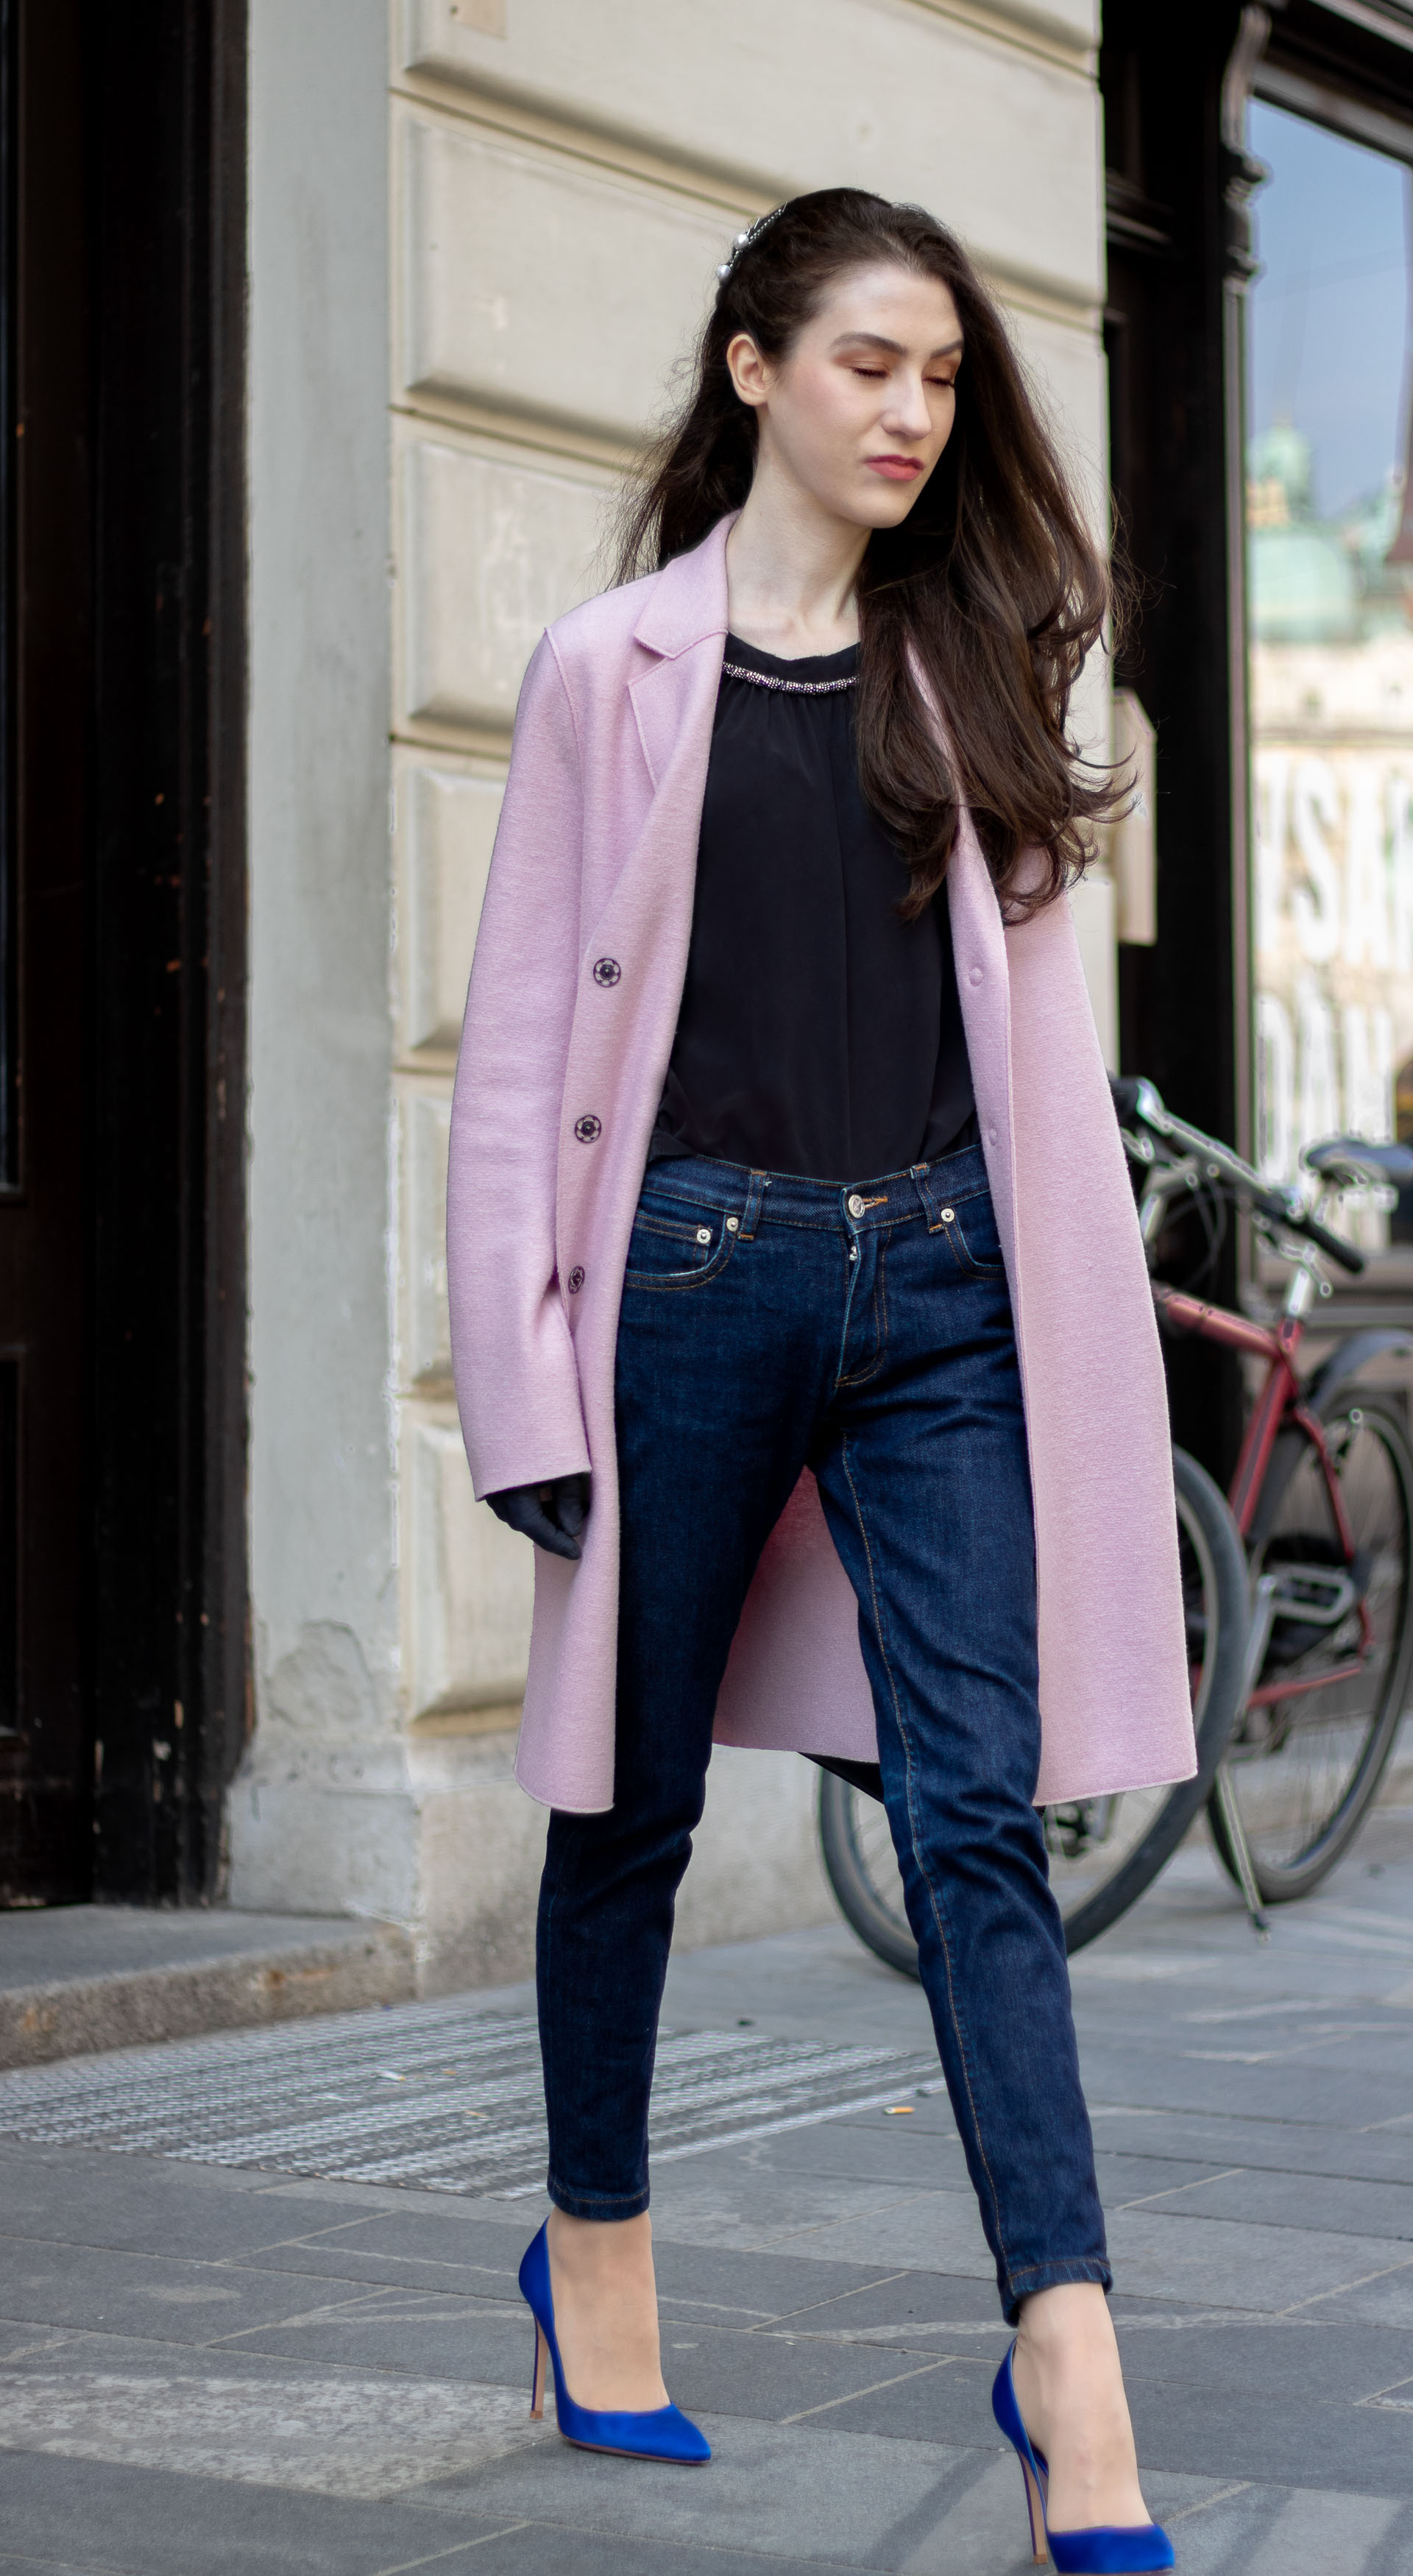 Must follow Fashion Blogger Veronika Lipar of Brunette from Wall Street dressed in loose pink Harris Wharf London coat A.P.C. Paris dark blue denim jeans Gianvito Rossi blue heels black top handle bag Forzieri blue leather gloves pearl hairpin walking down the street